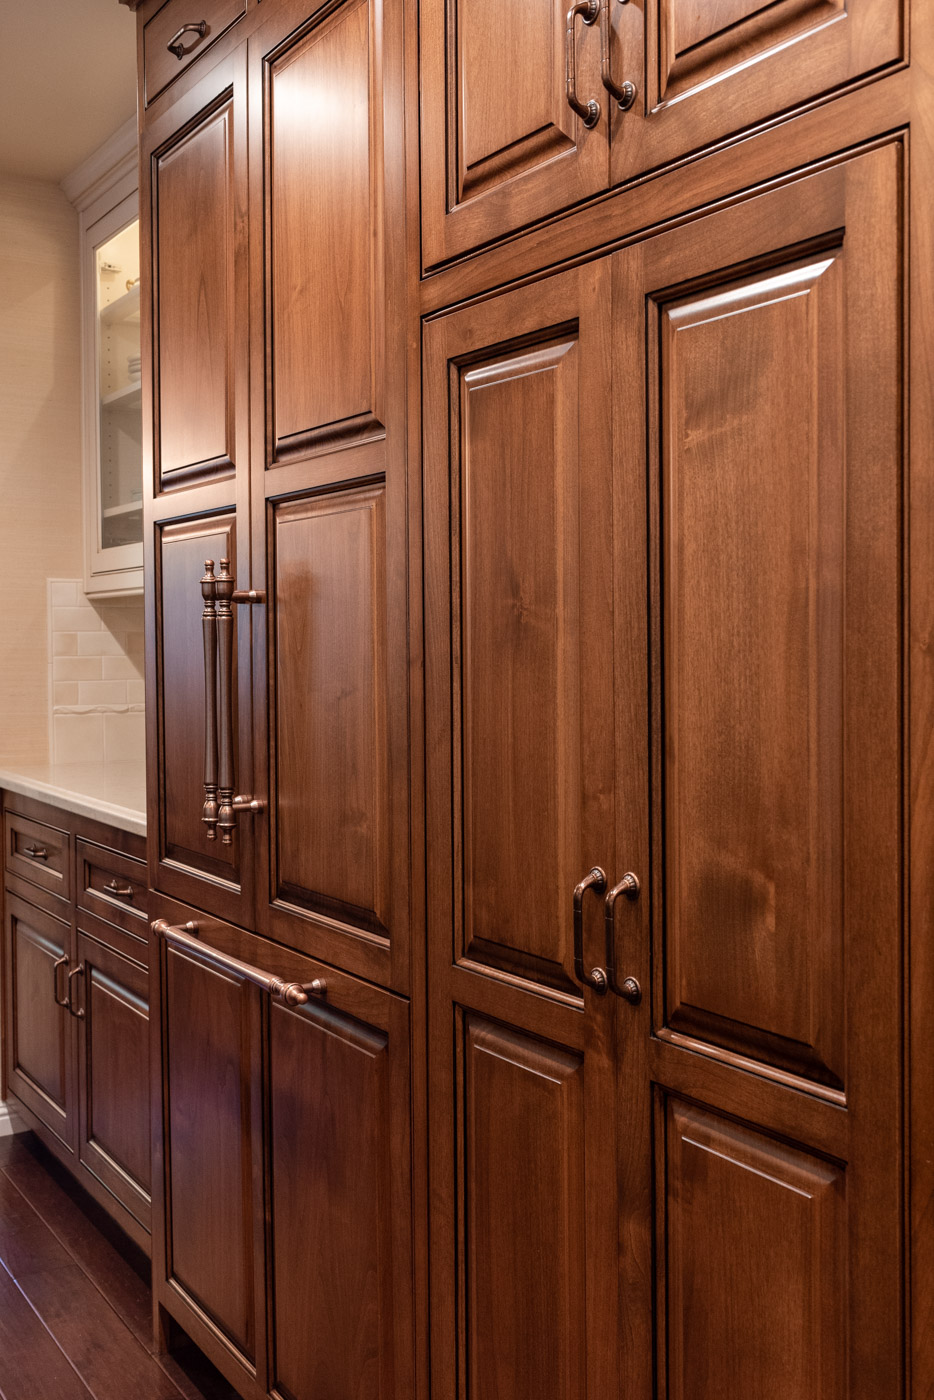 An example of a raised panel five-piece detail door using Cope & Stick construction